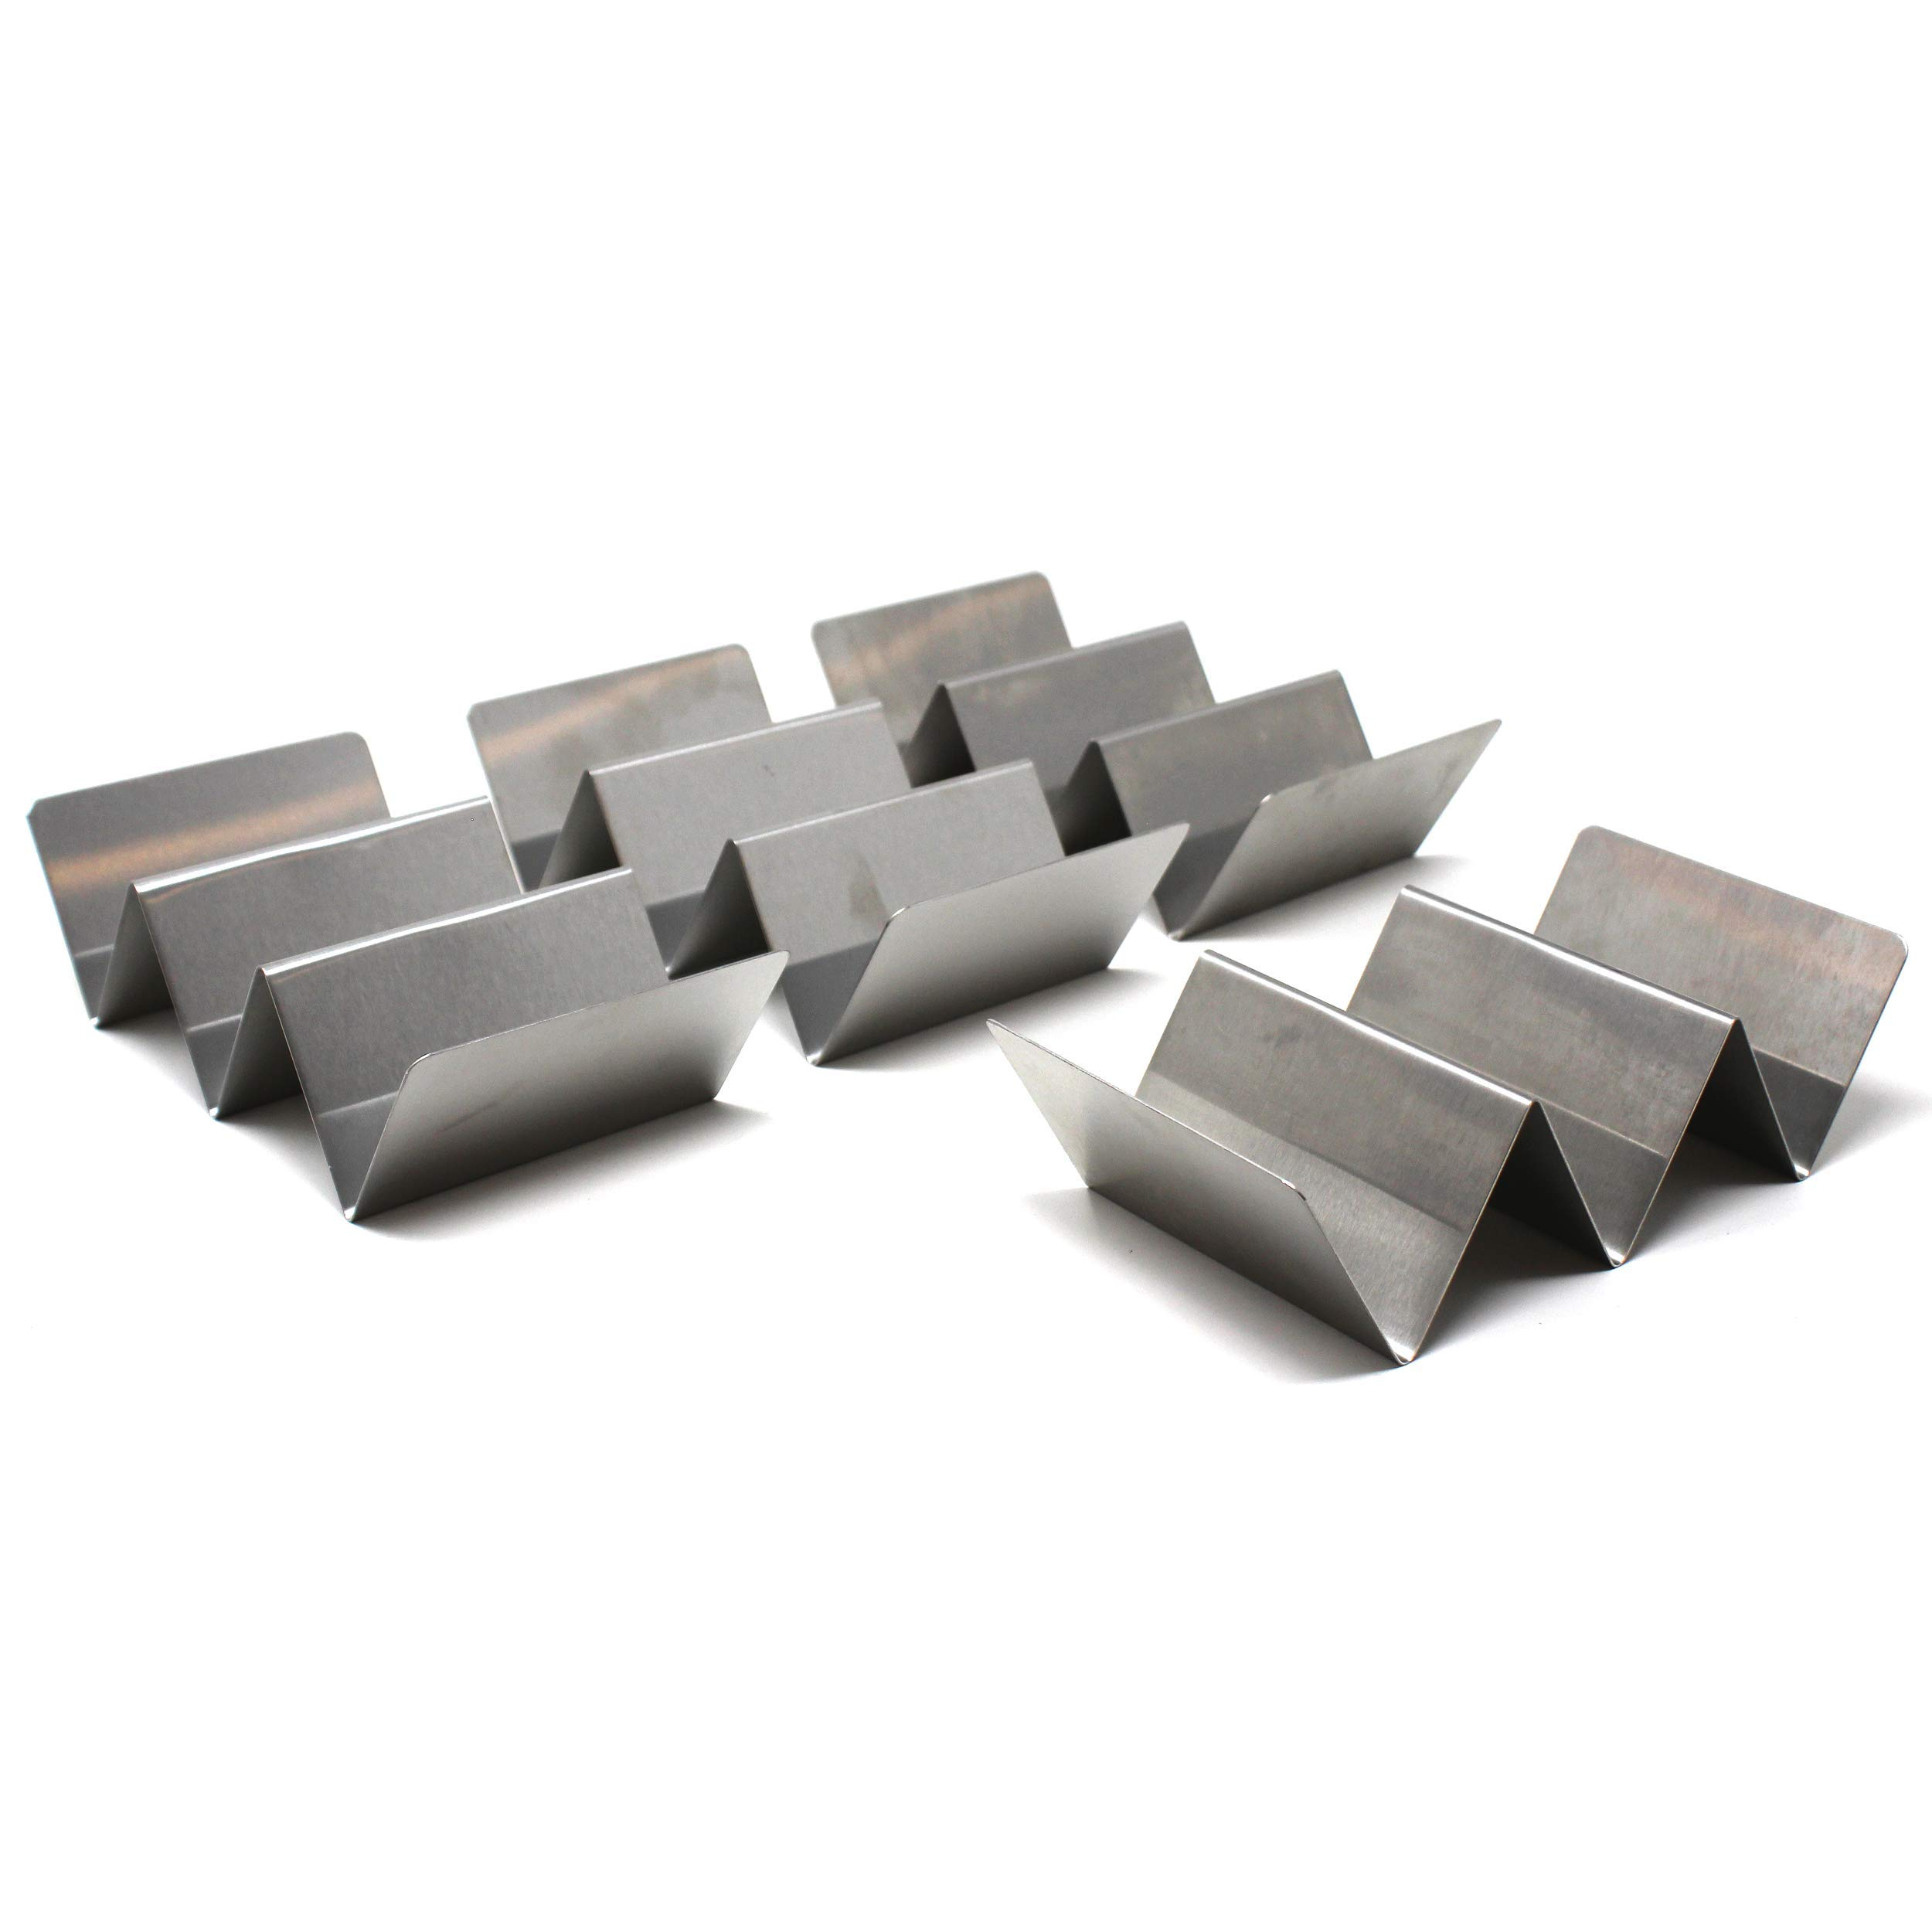 VistosoHome Stainless Steel Taco Holder 4-Pack - Taco Serving Stand Fits 3 Tacos - Great for Hard or Soft Shell Tacos - Dishwasher & Oven Safe - Stylish & Modern Taco Rack (Silver)